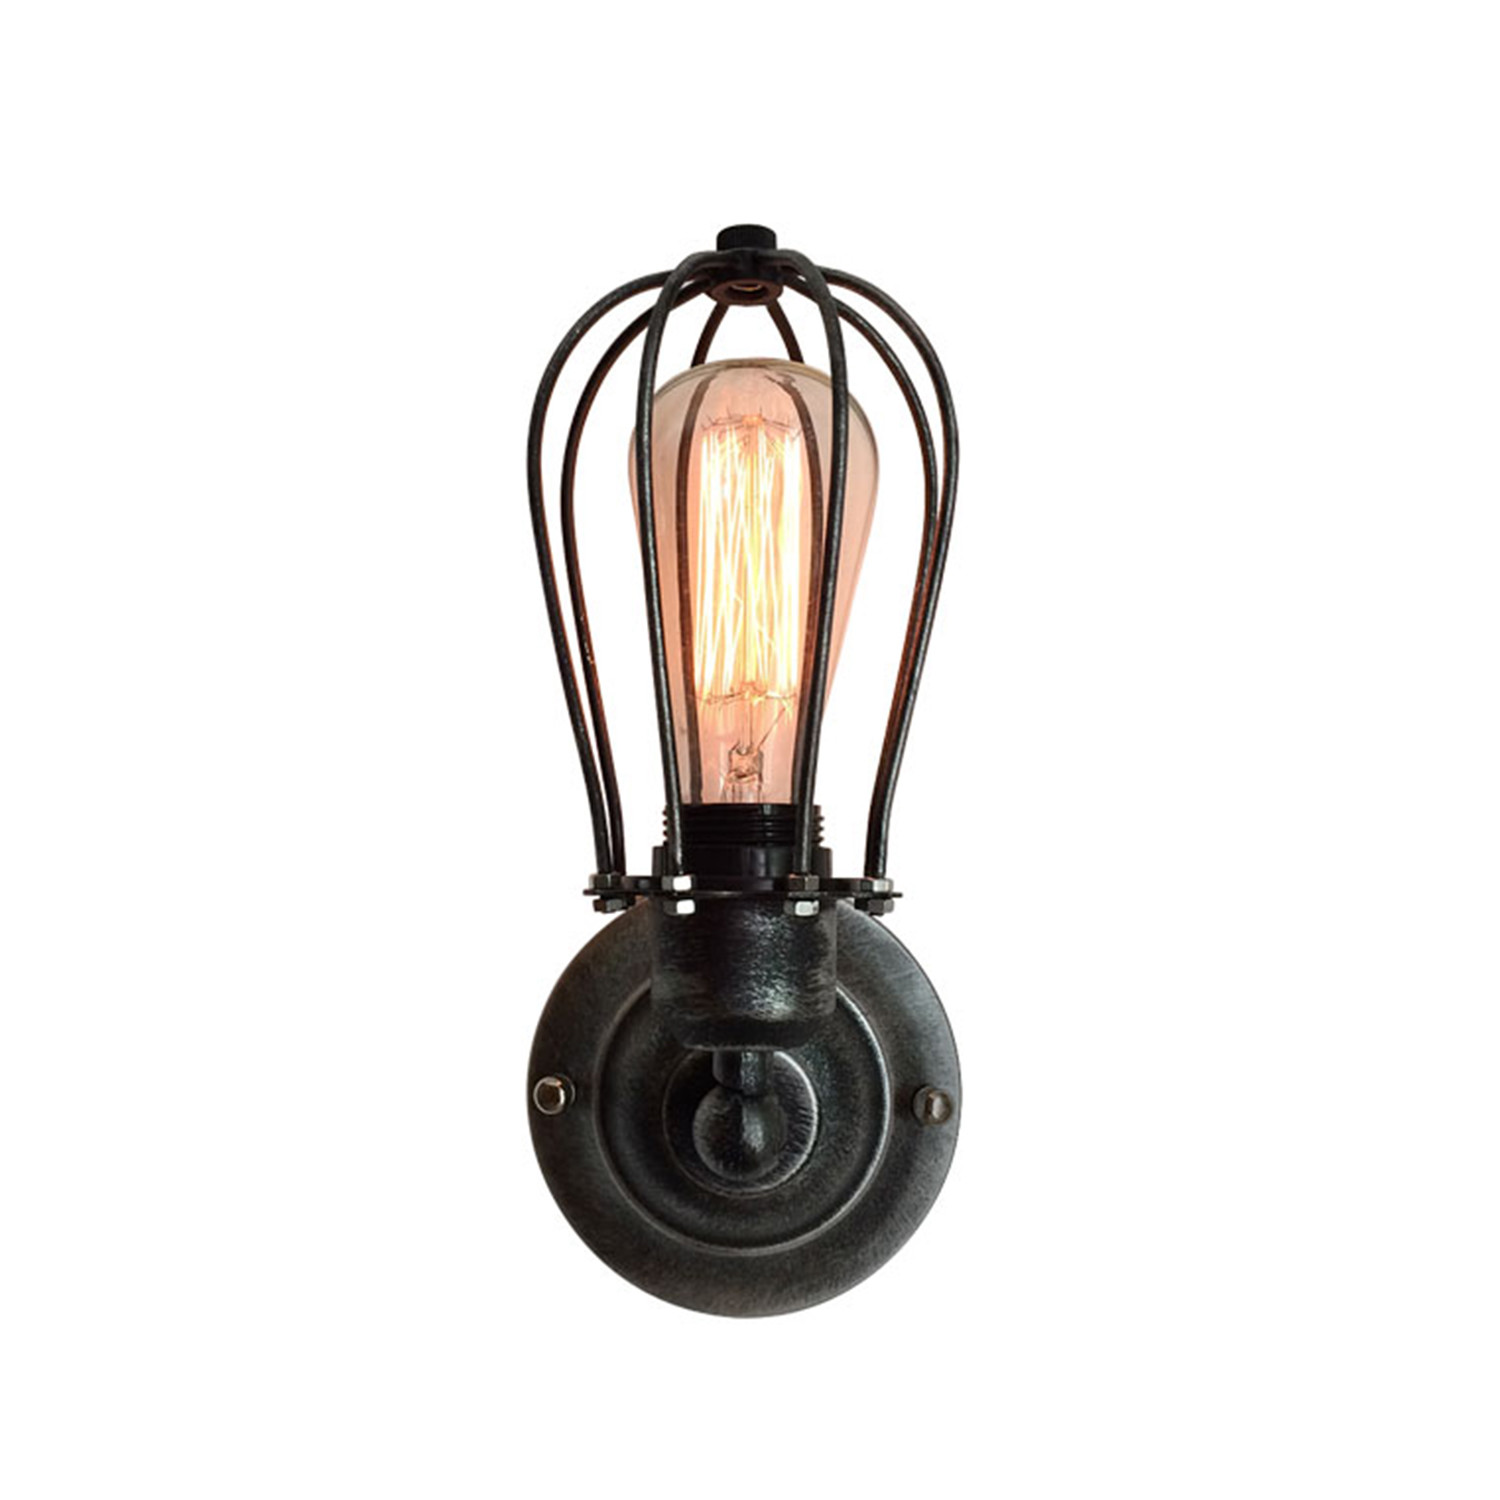 Industrial Cage Light Wall Sconce